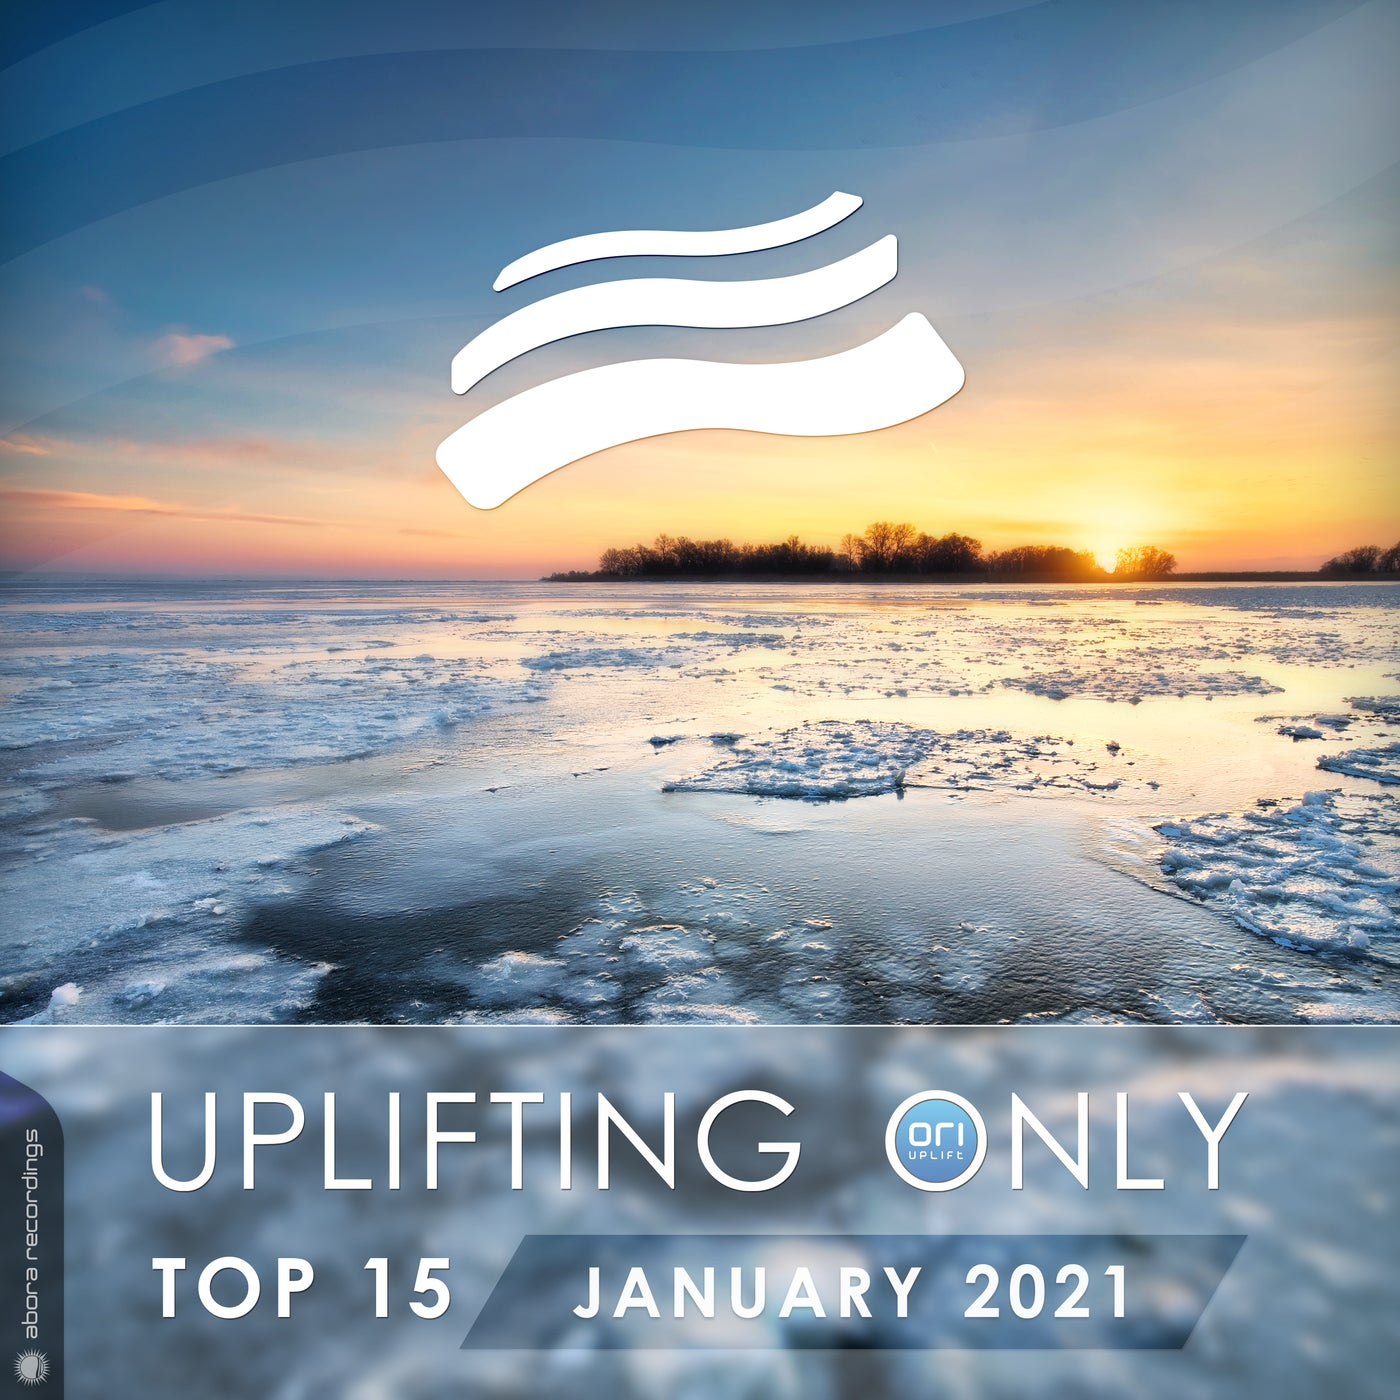 Uplifting Only Top 15: January 2021